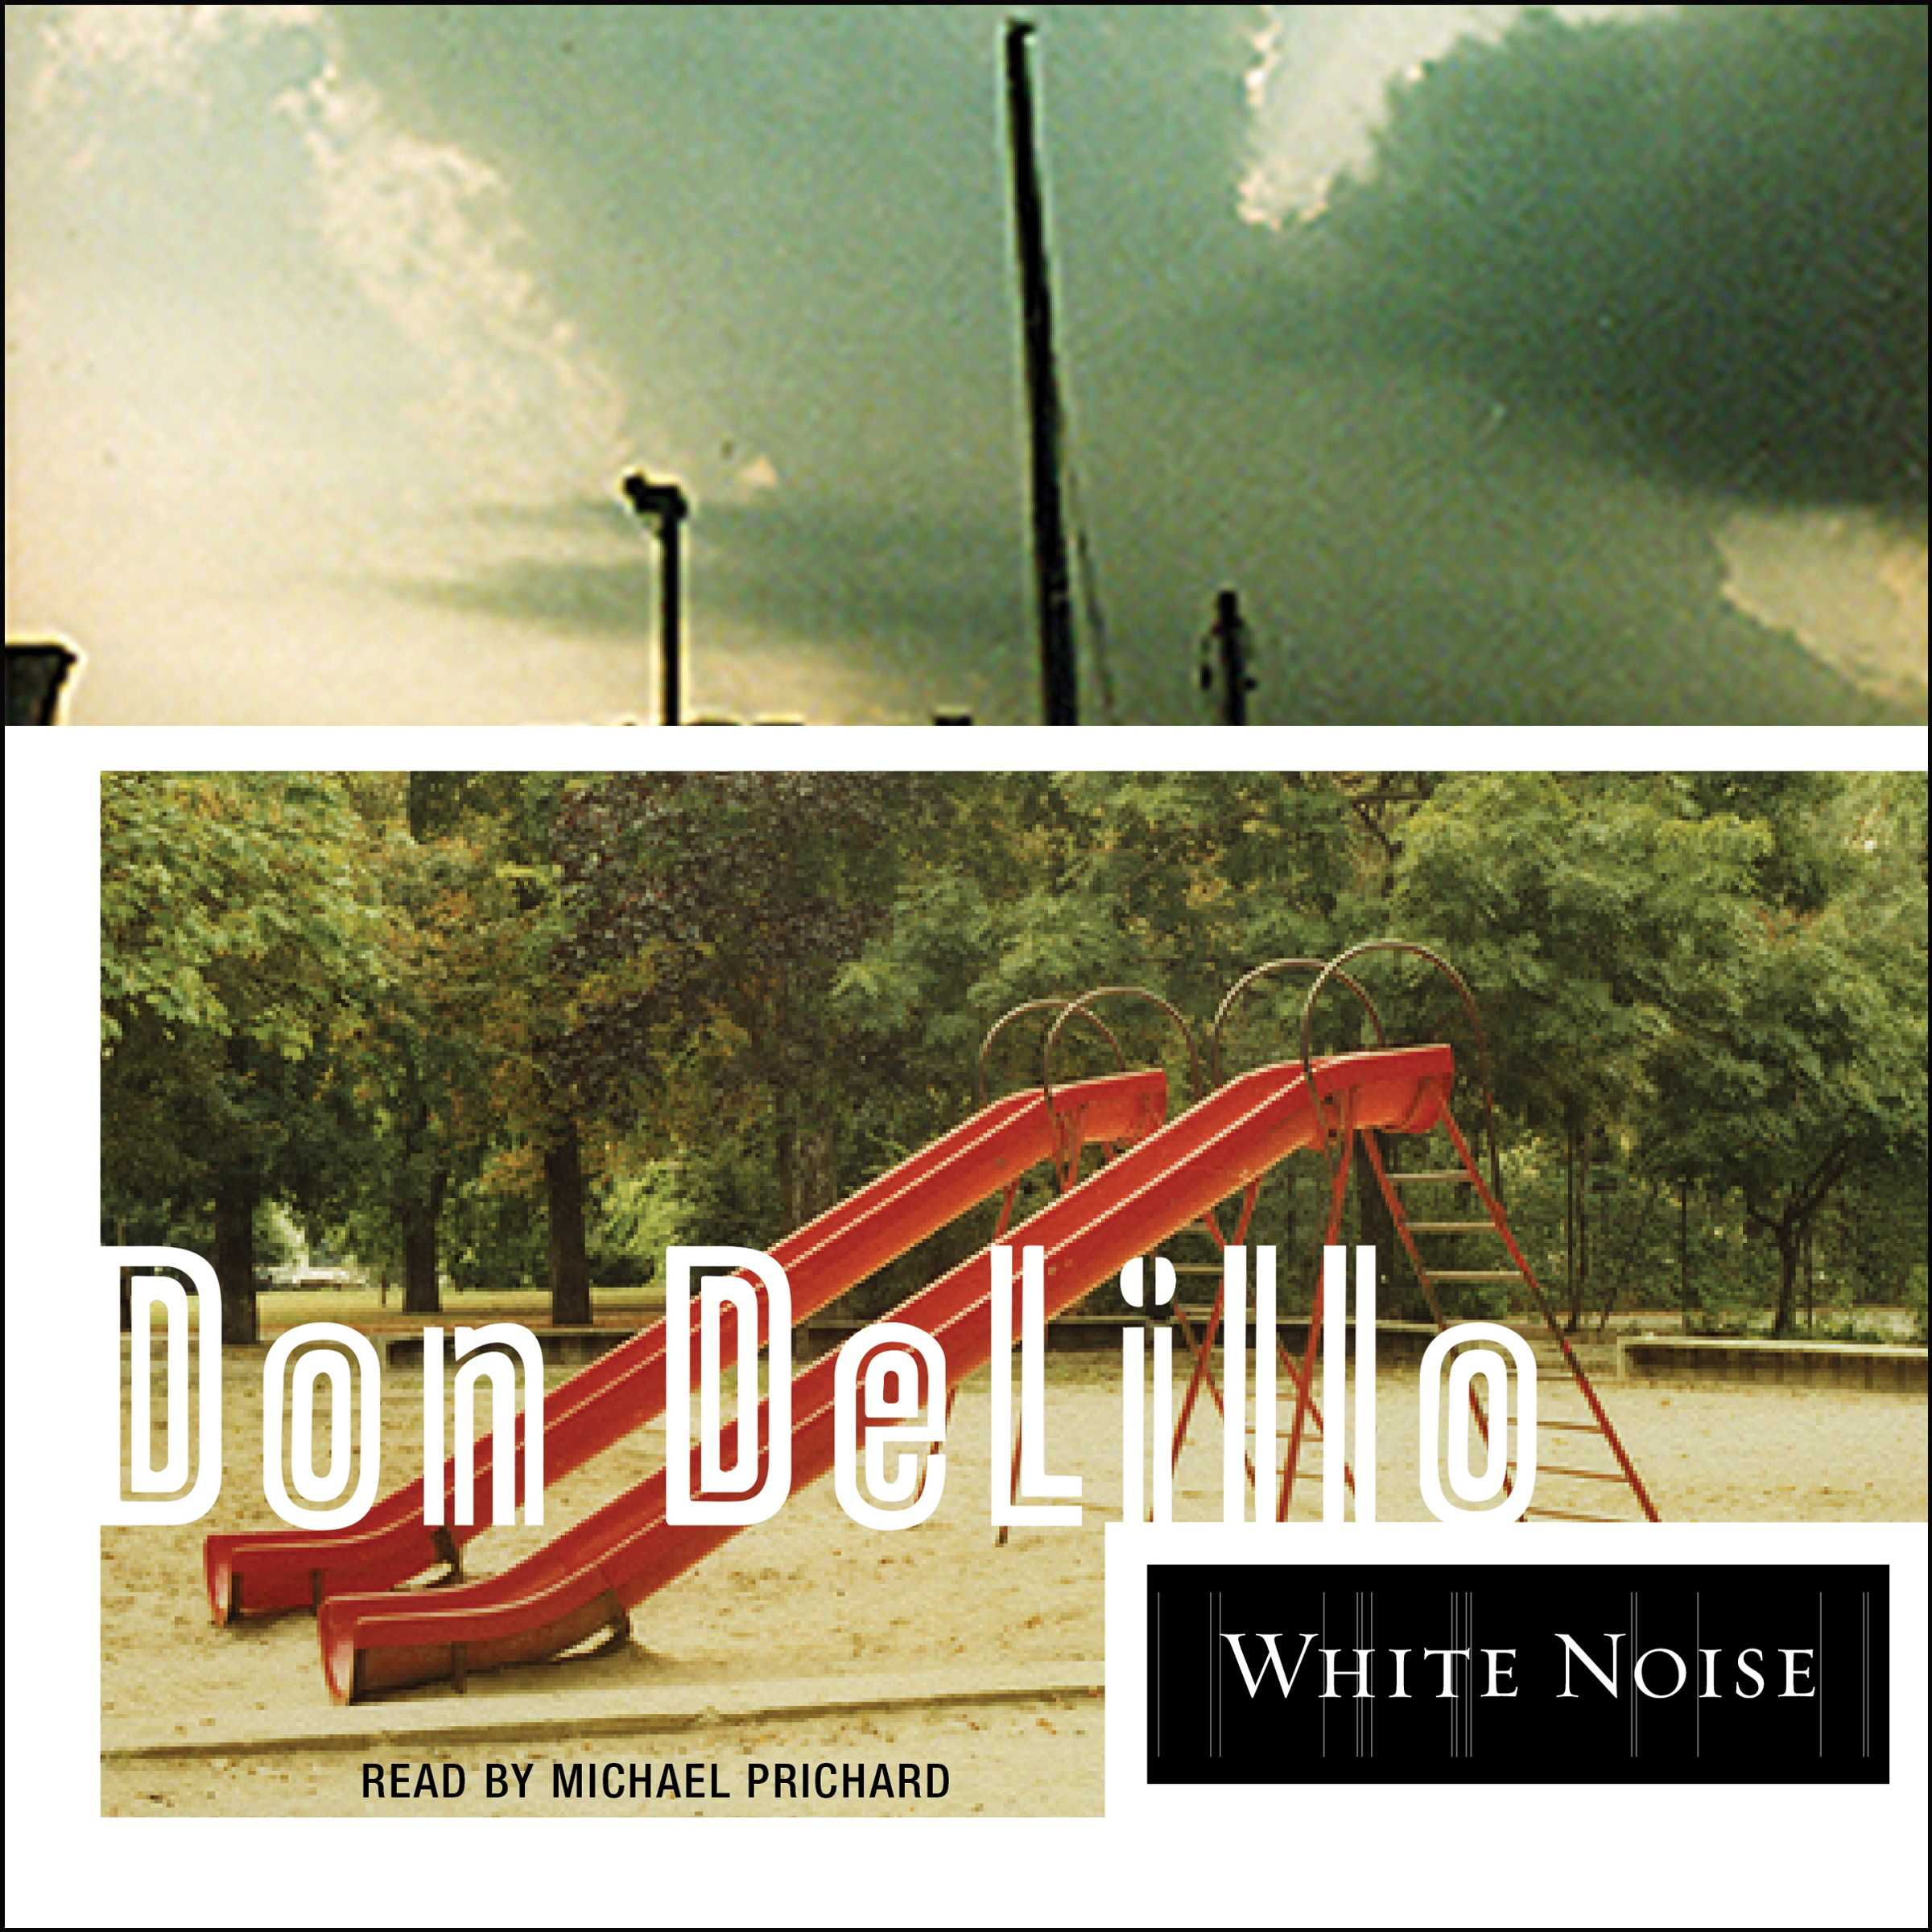 White Noise Book Cover : White noise audiobook by don delillo michael prichard